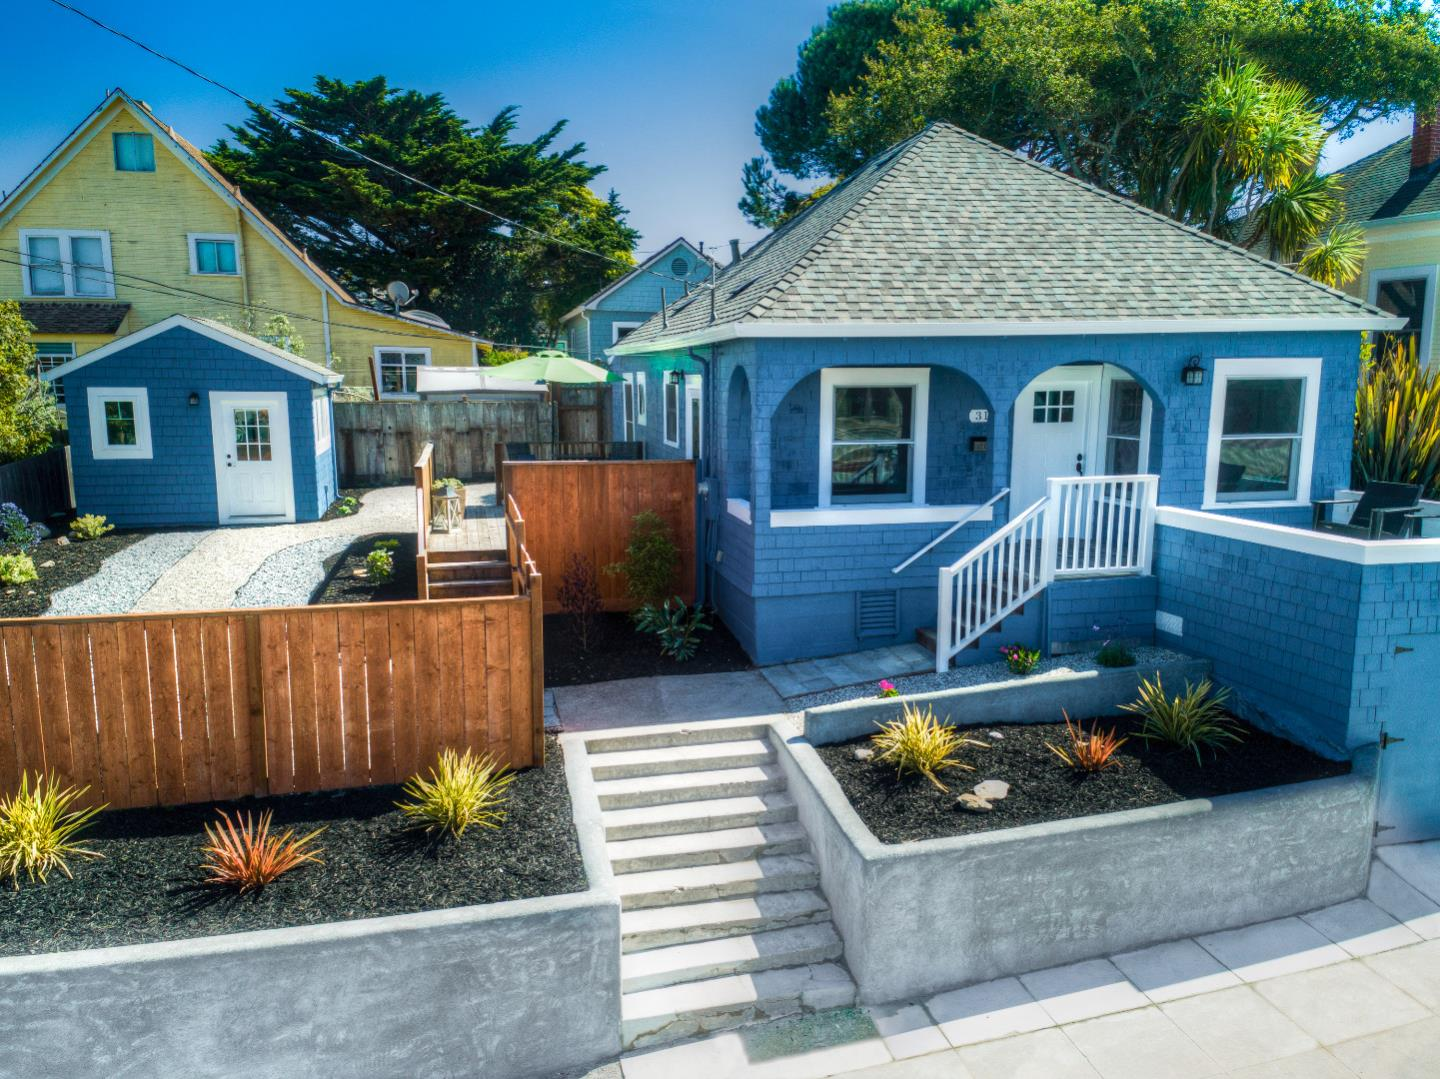 Property for sale at 311 Carmel AVE, Pacific Grove,  California 93950